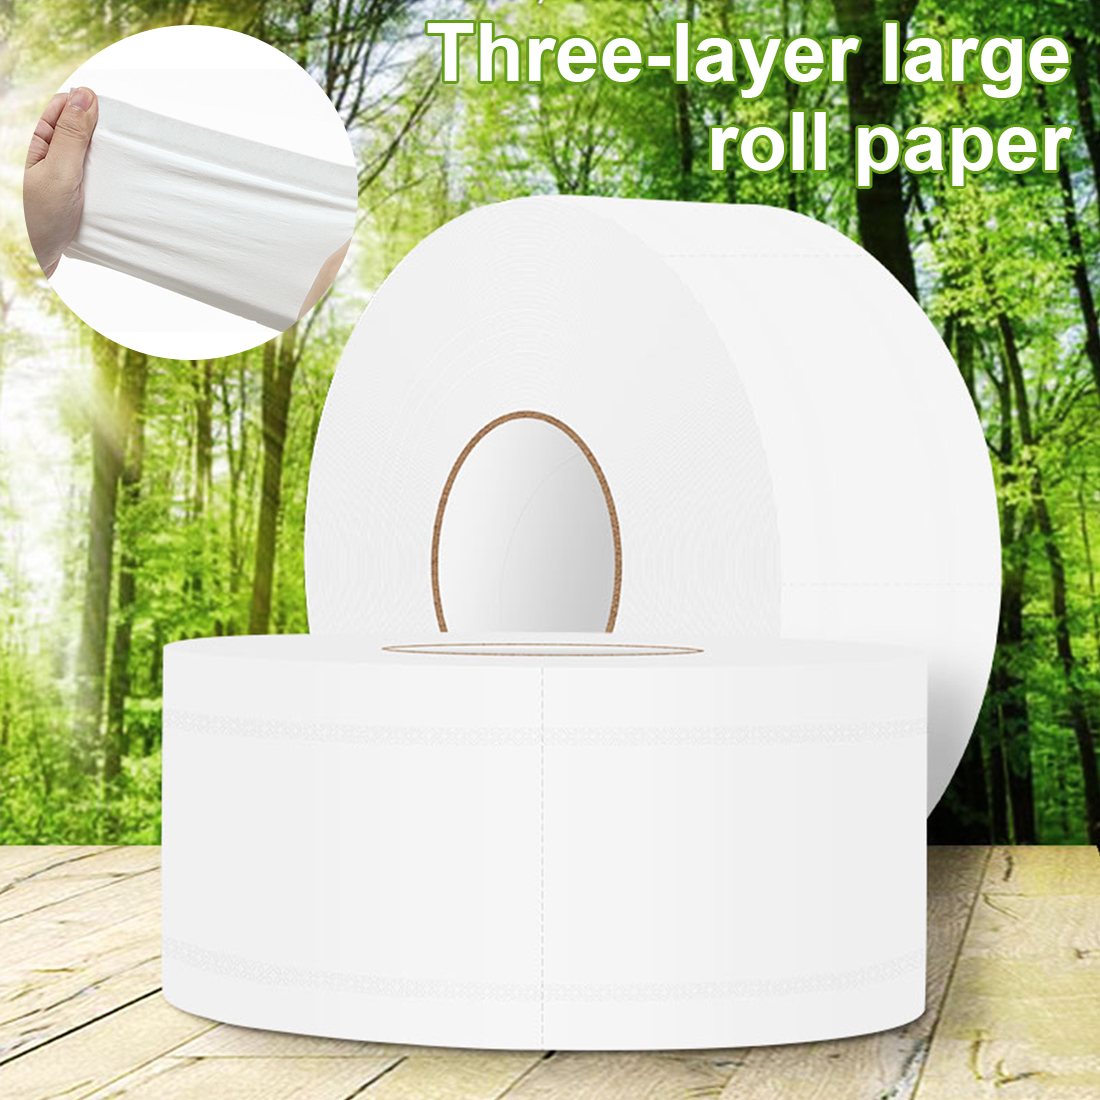 2pcs 580g/roll 900+ Sheets Jumbo Roll Toilet Tissue White Hollow Replacement Roll Paper Soft Toilet Paper For Home Public Hotel